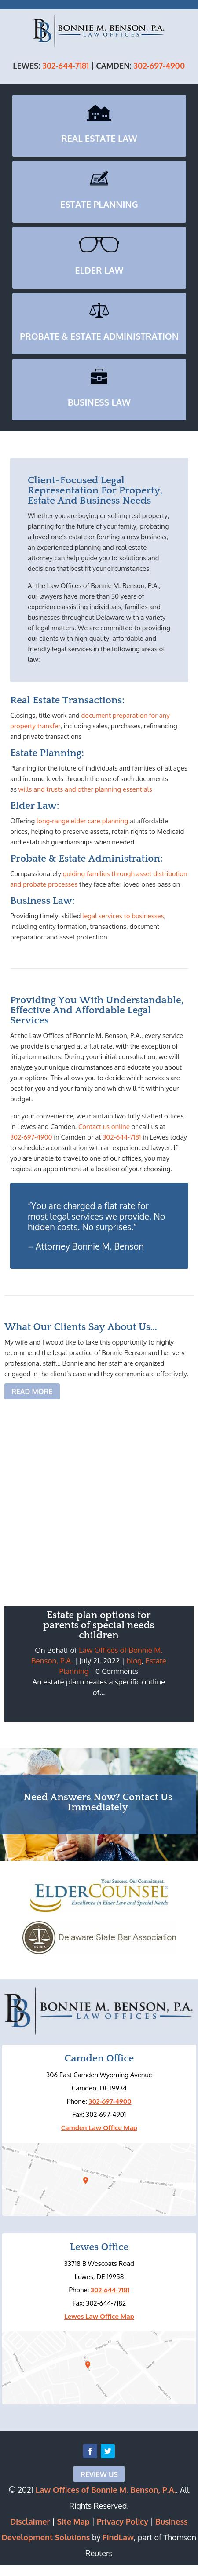 Law Offices of Bonnie M. Benson, P.A. - Camden DE Lawyers